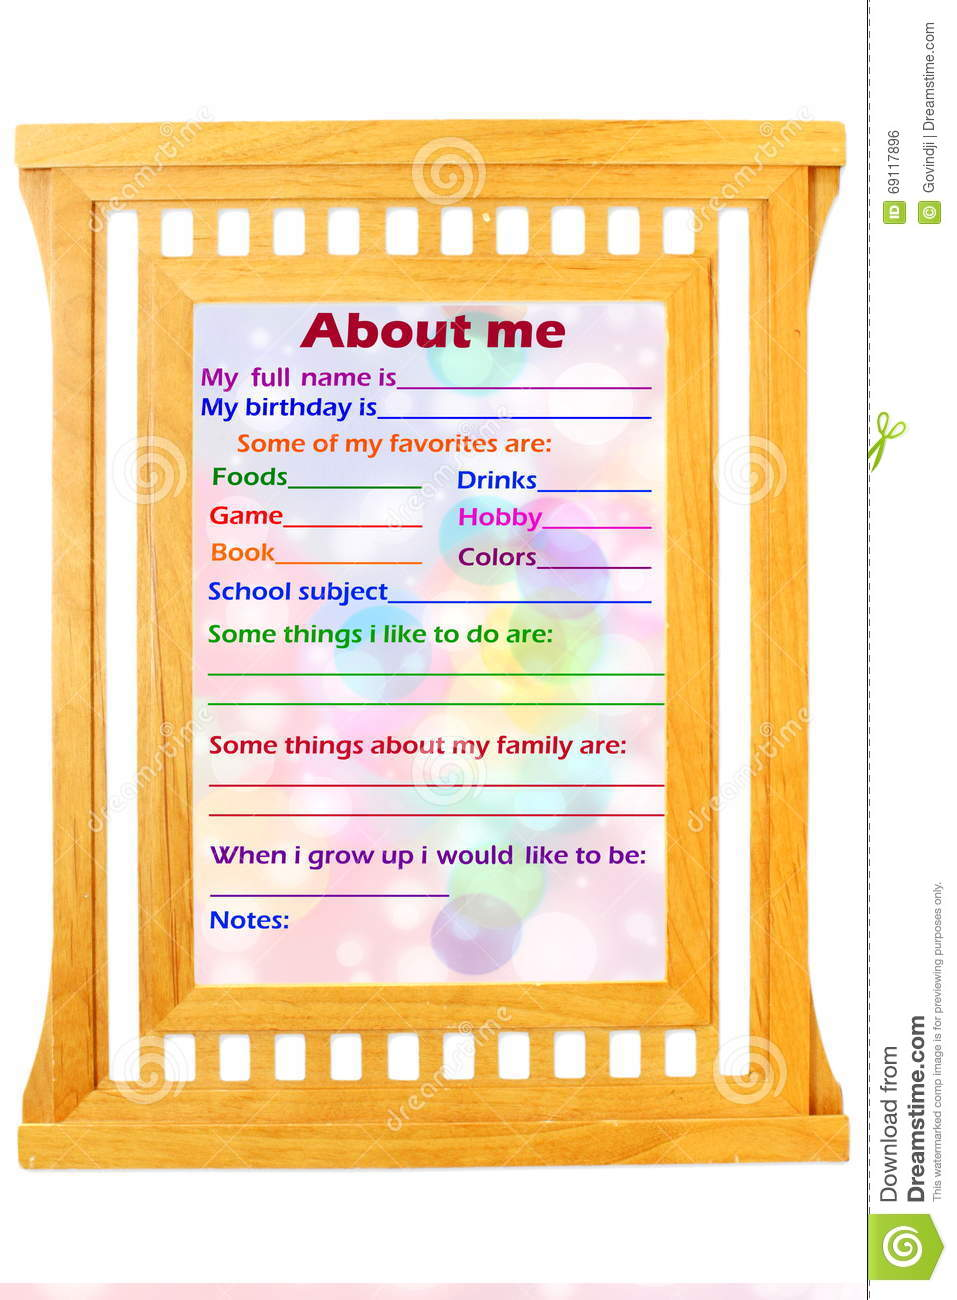 About Me Myself Phrase Concept Text In Wooden Frame Stock Photo ...